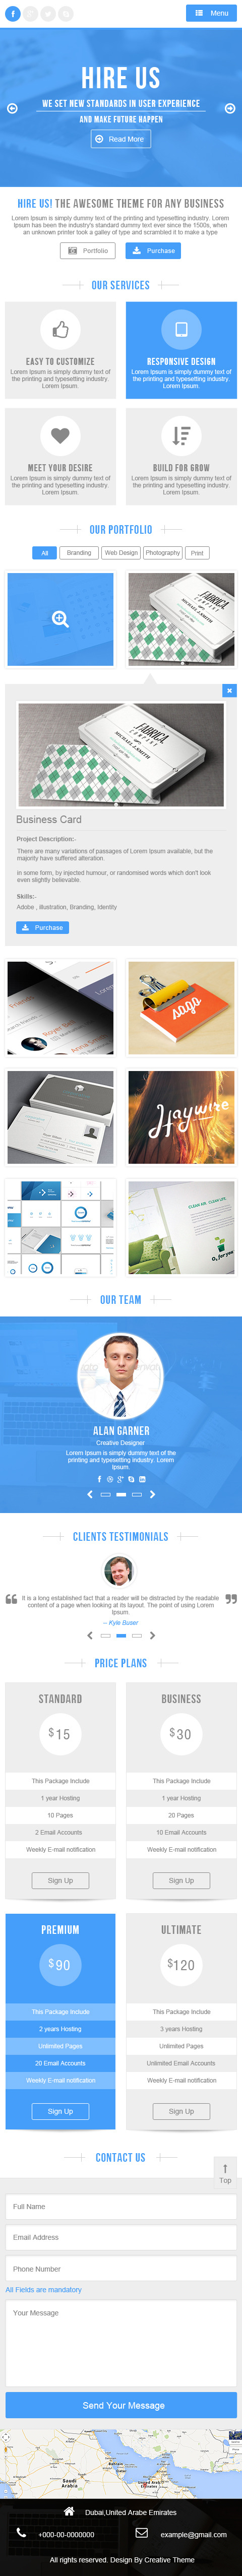 Hire Us - Multi-Purpose Landing Page